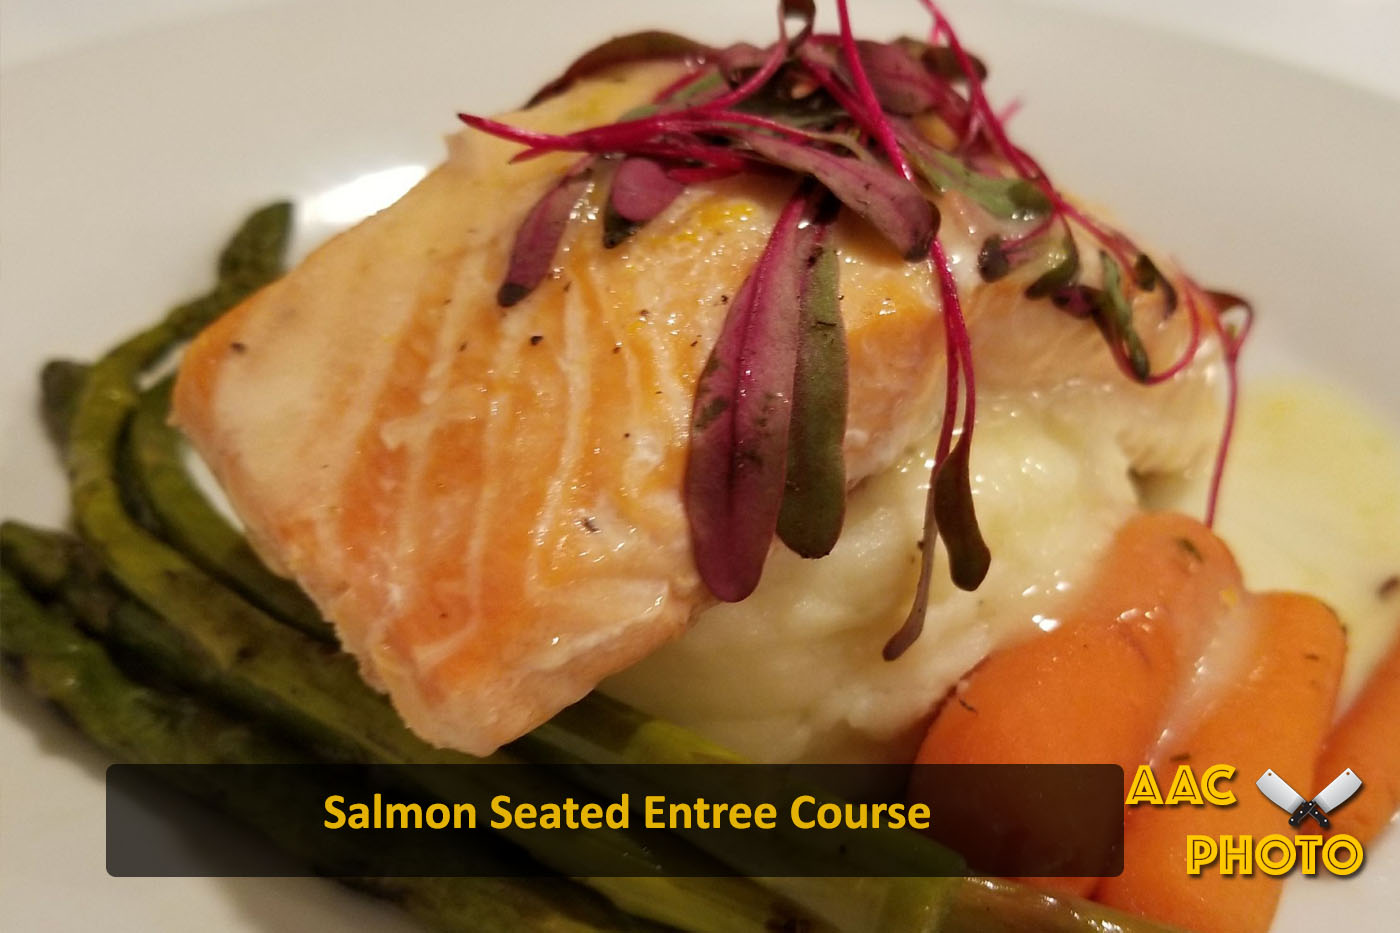 Seated Entree Salmon